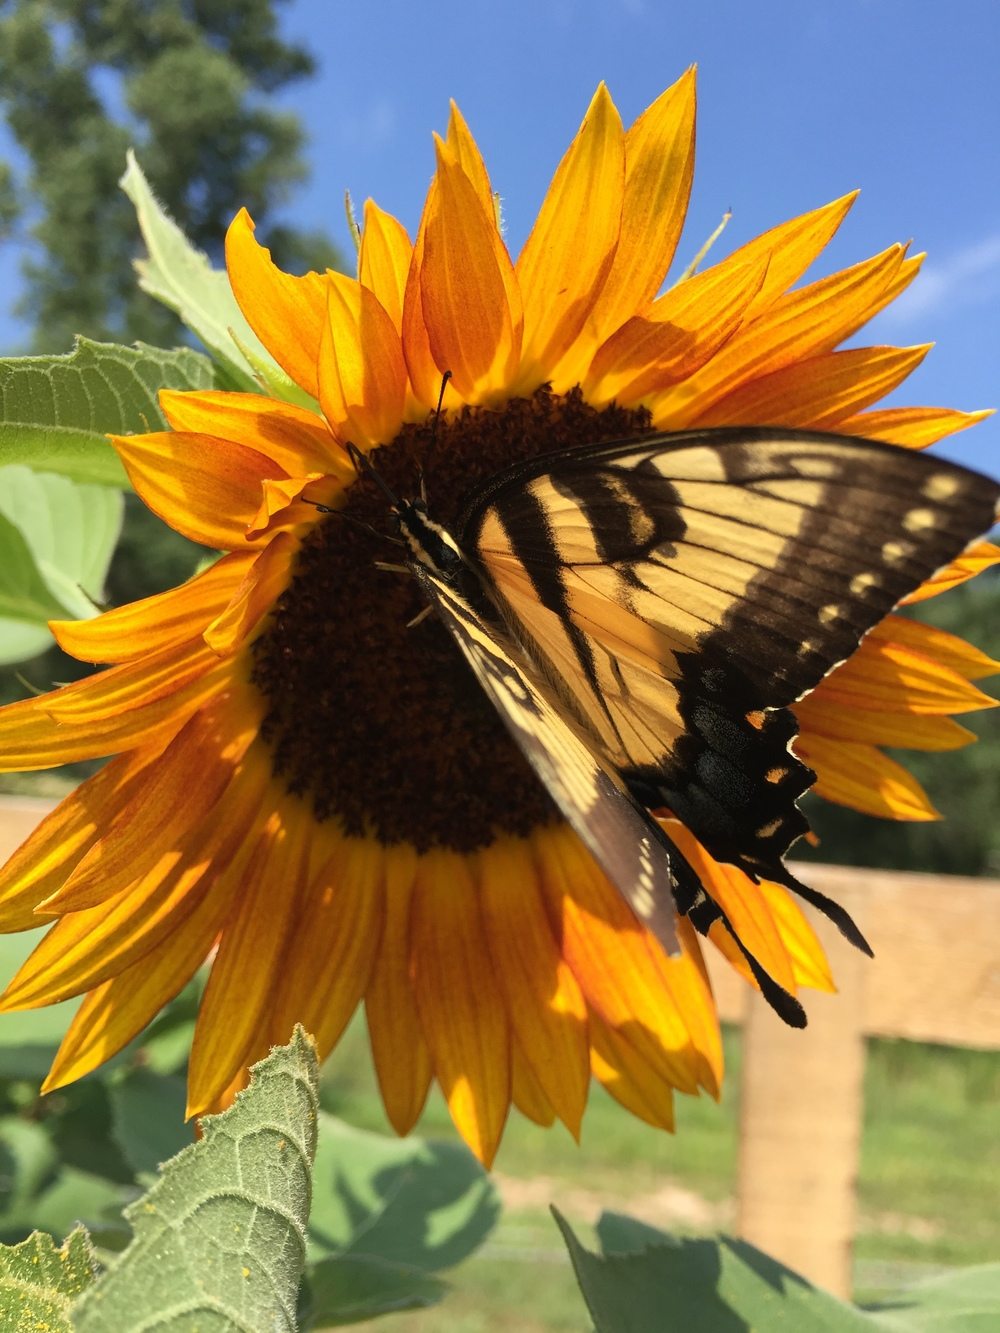 The butterflies loved all the sunflowers last year!